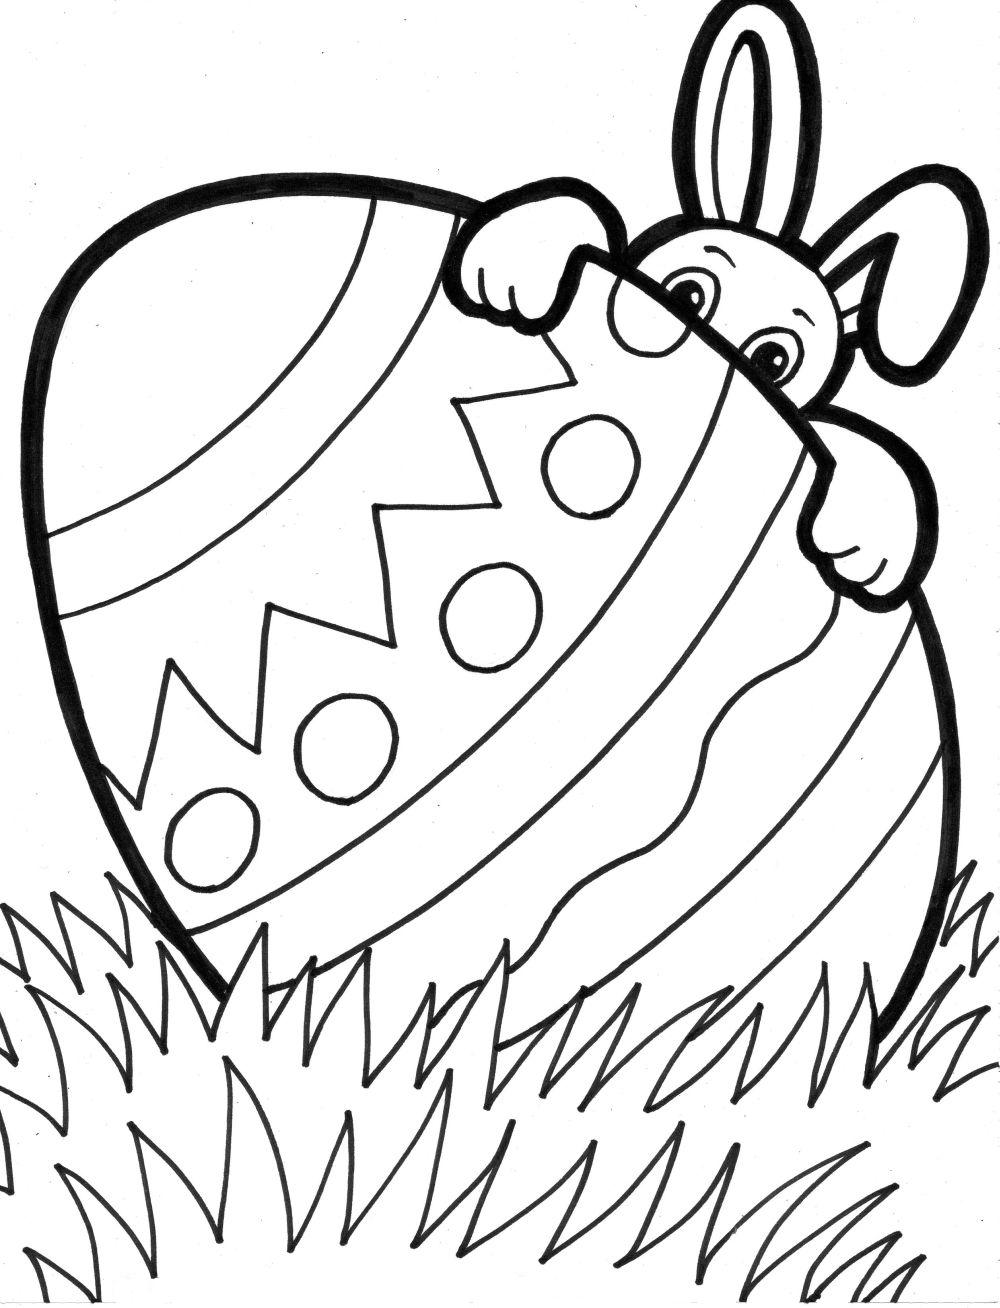 16 Free Printable Easter Coloring Pages for Kids | free printable easter coloring pages for toddlers